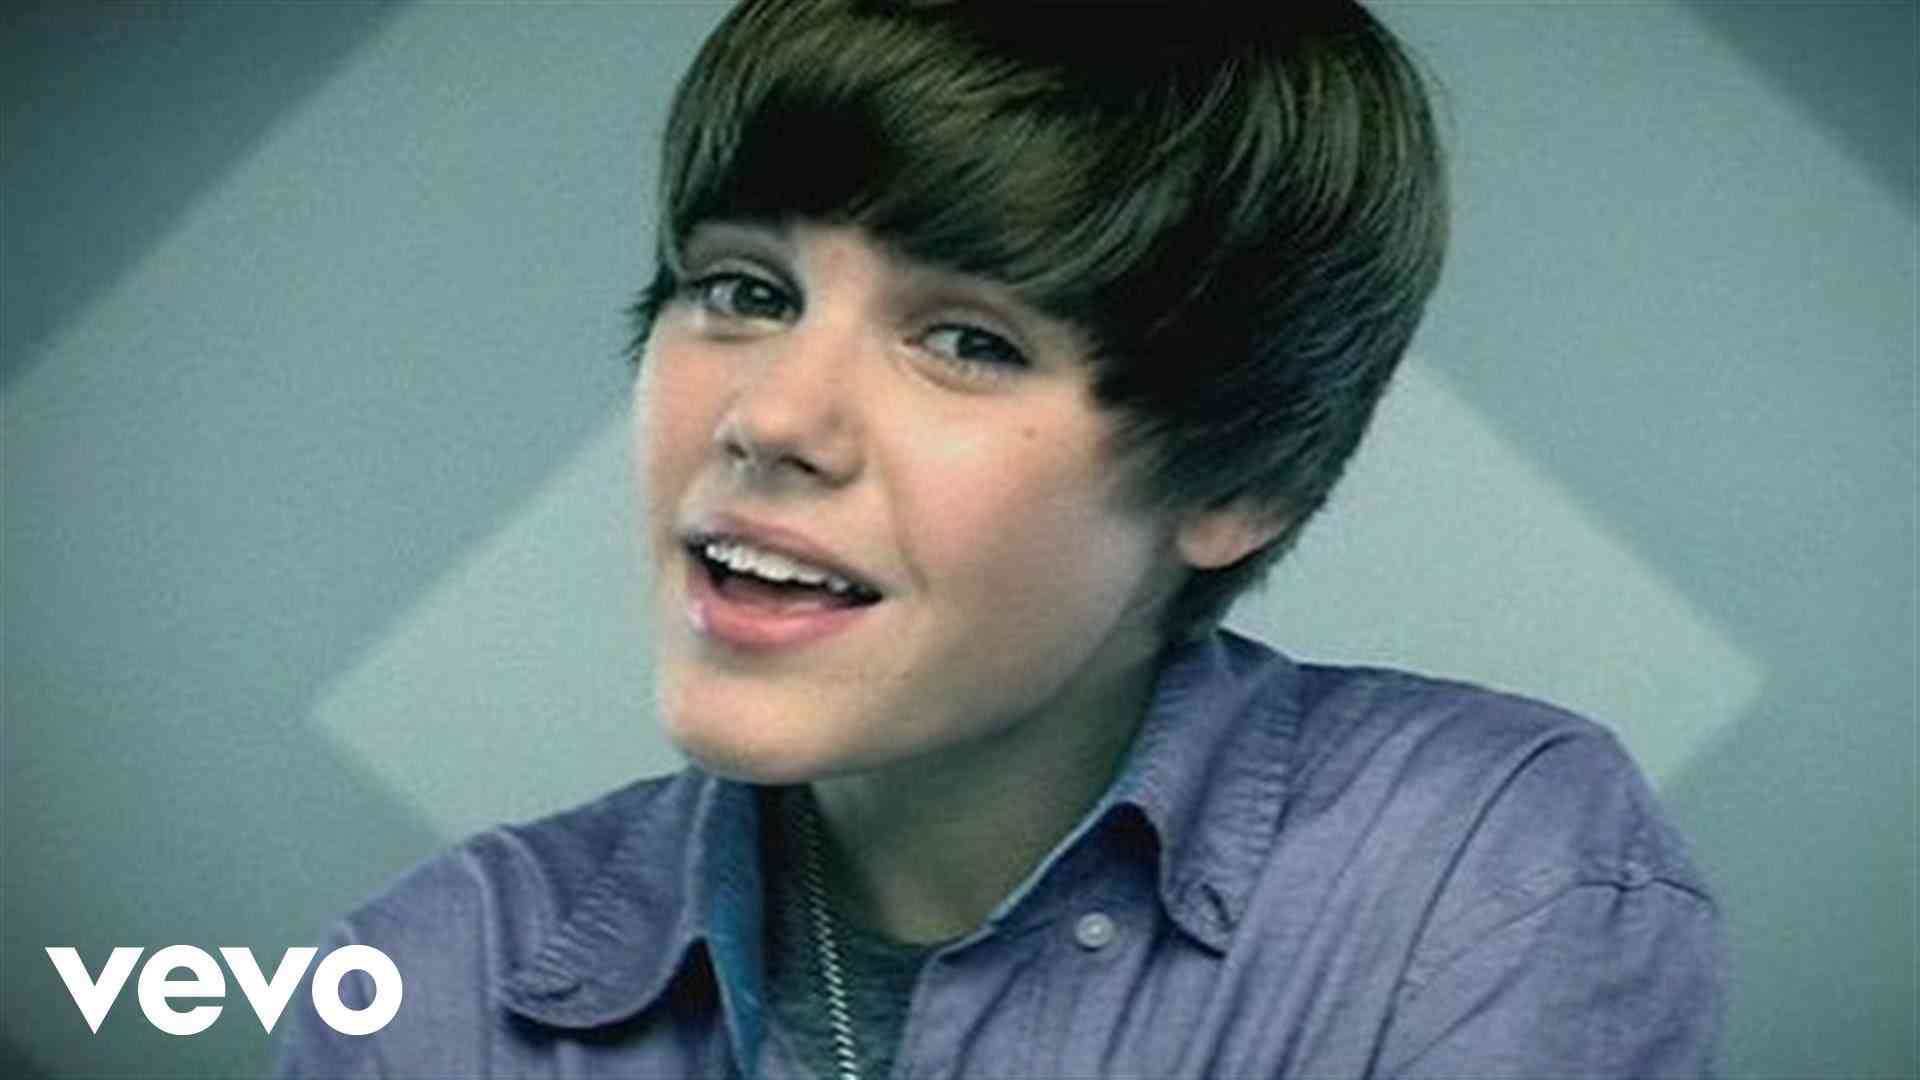 Justin Bieber - Baby ft. Ludacris - YouTube